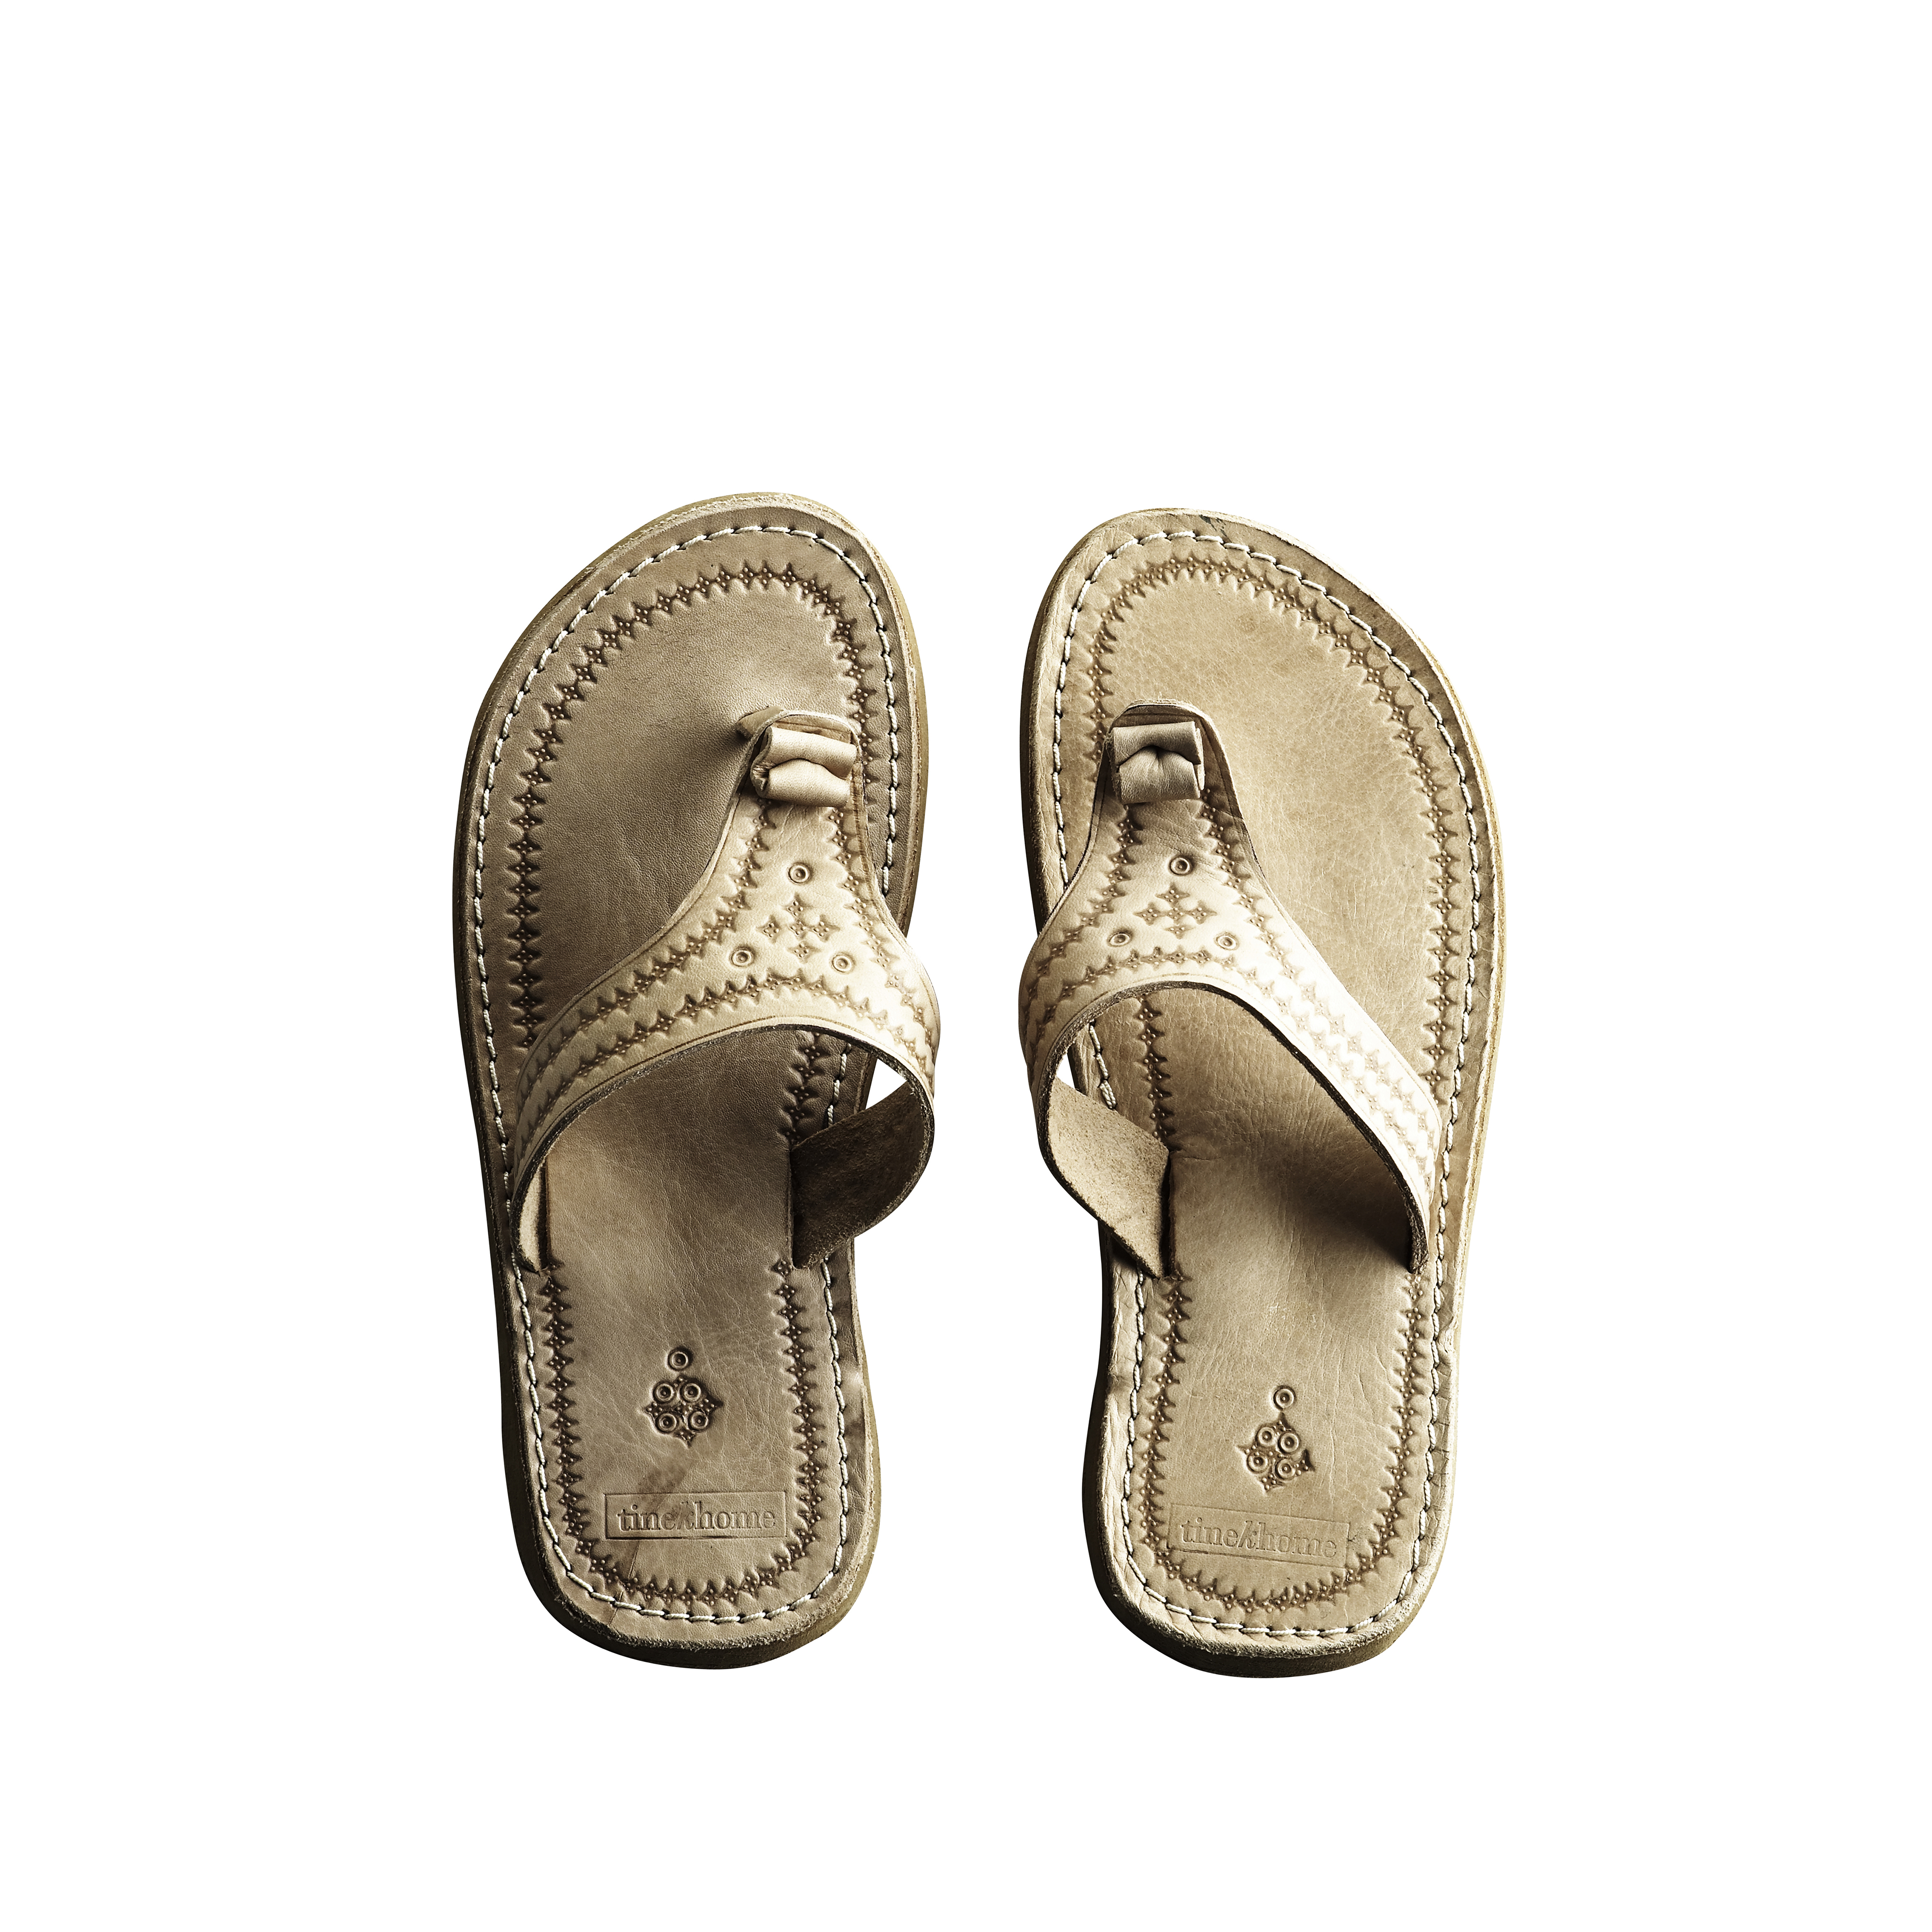 Leather sandal, size from 24-35